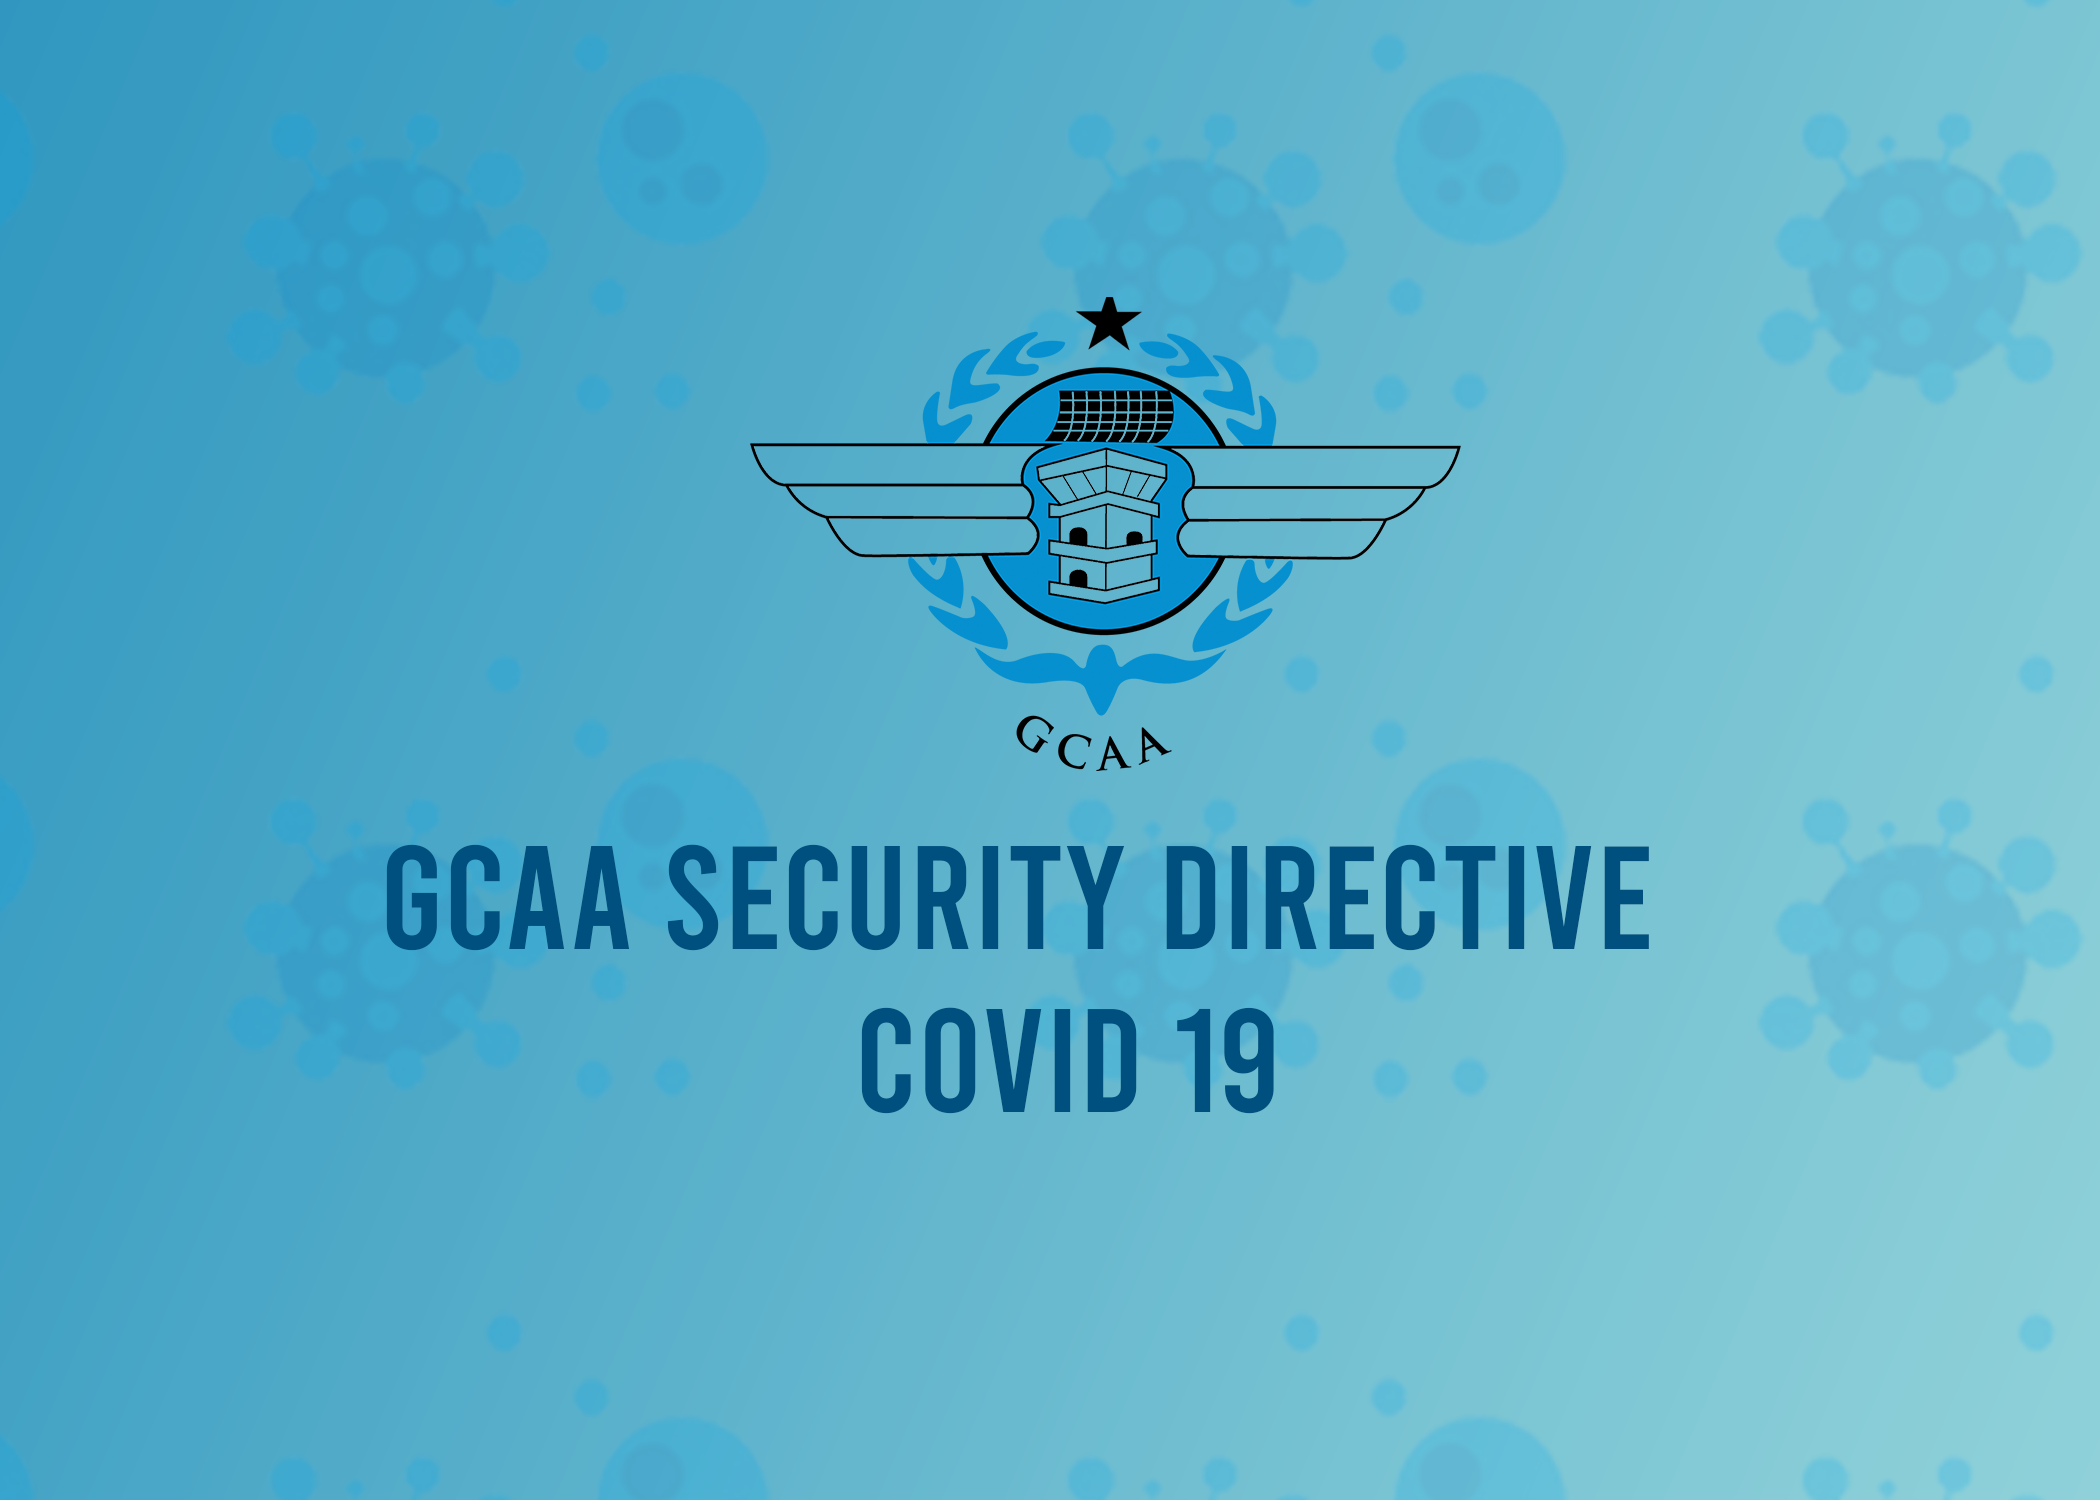 SECURITY DIRECTIVE COVID 19